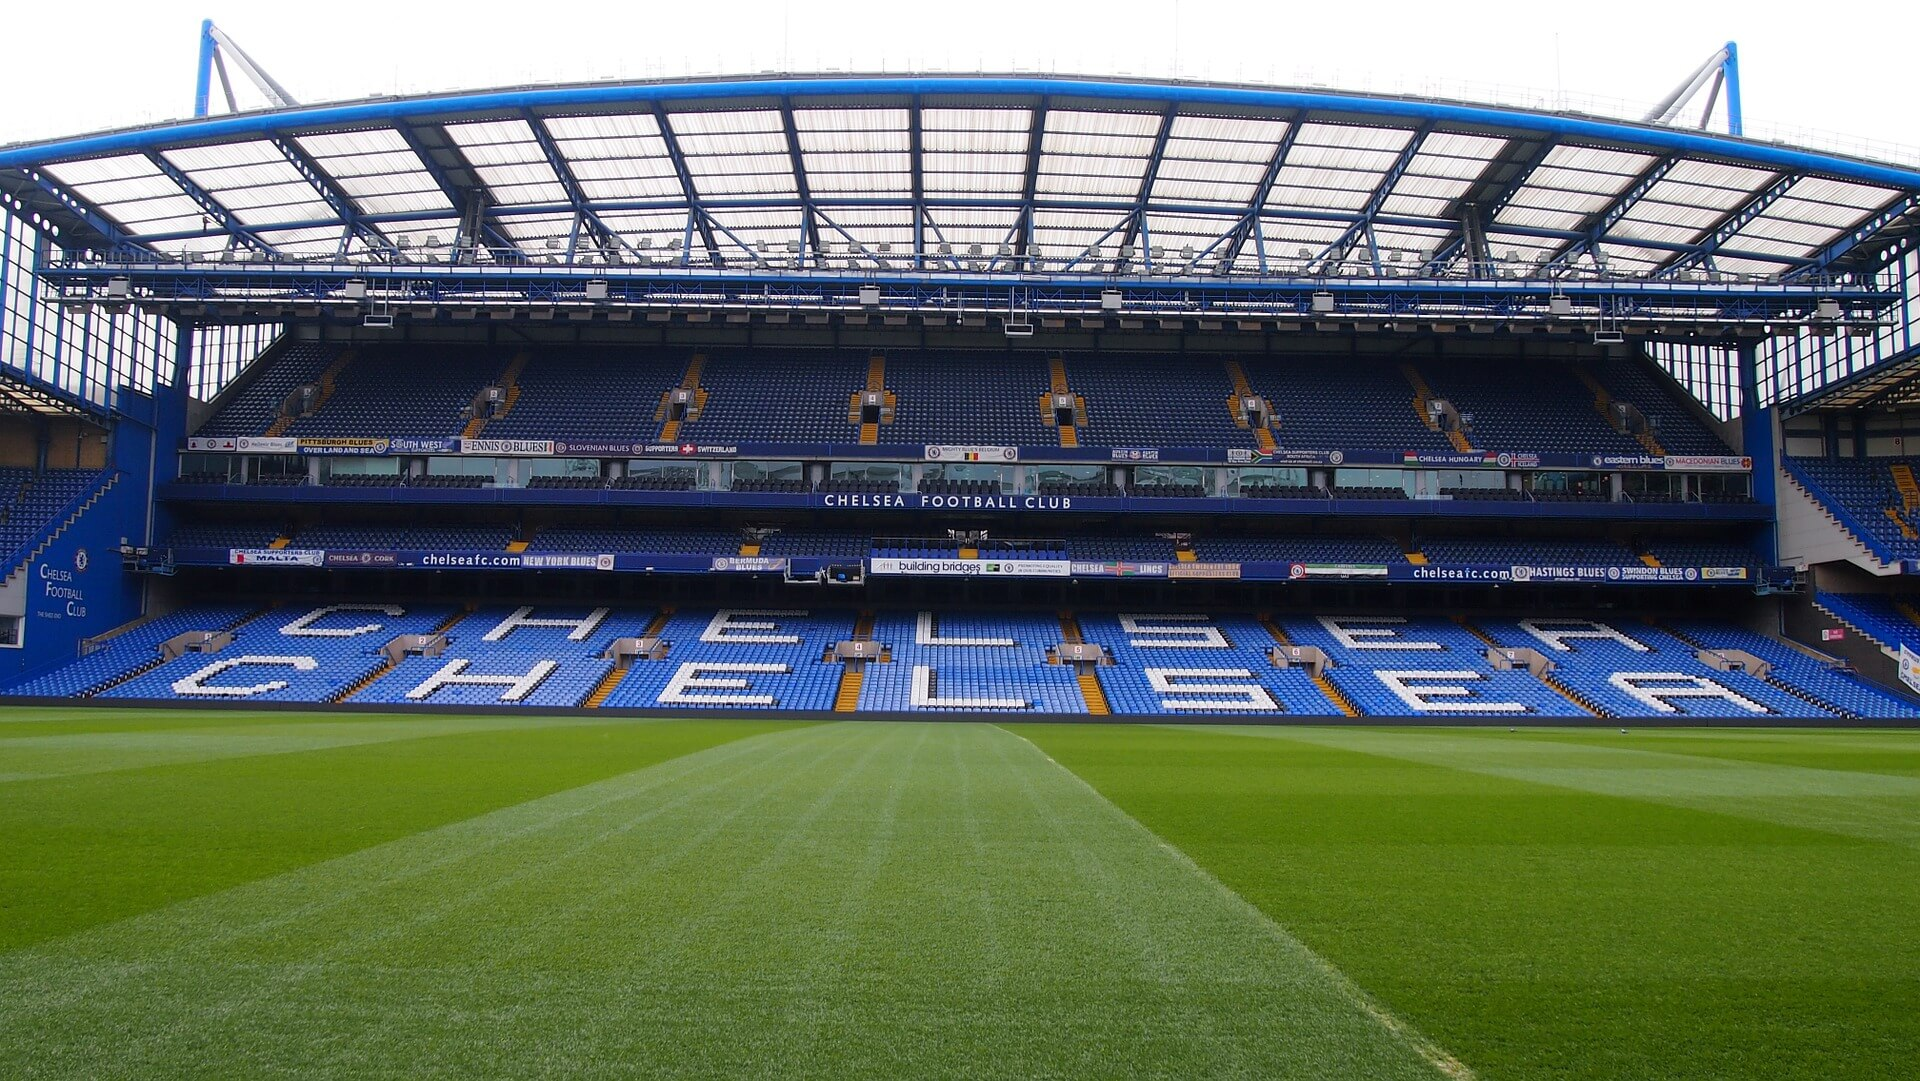 Stamford Bridge Tour - Chelsea Stadium Tour